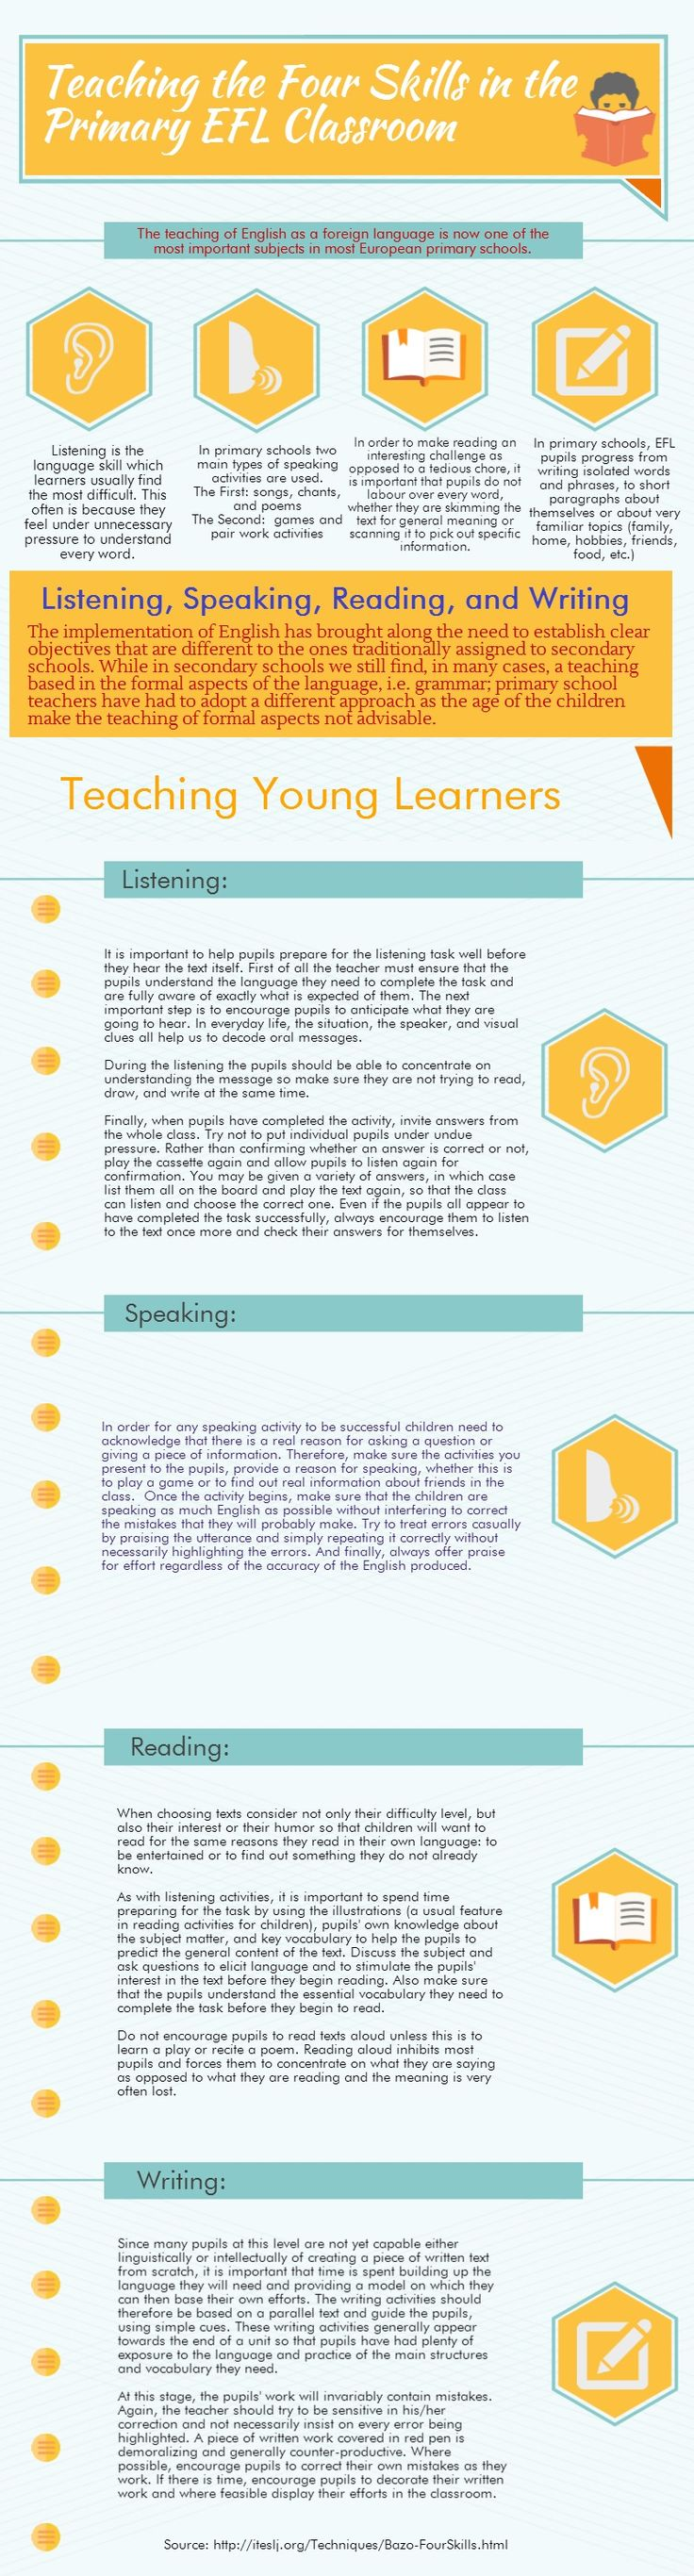 Teaching the Four Skills in the Primary EFL Classroom